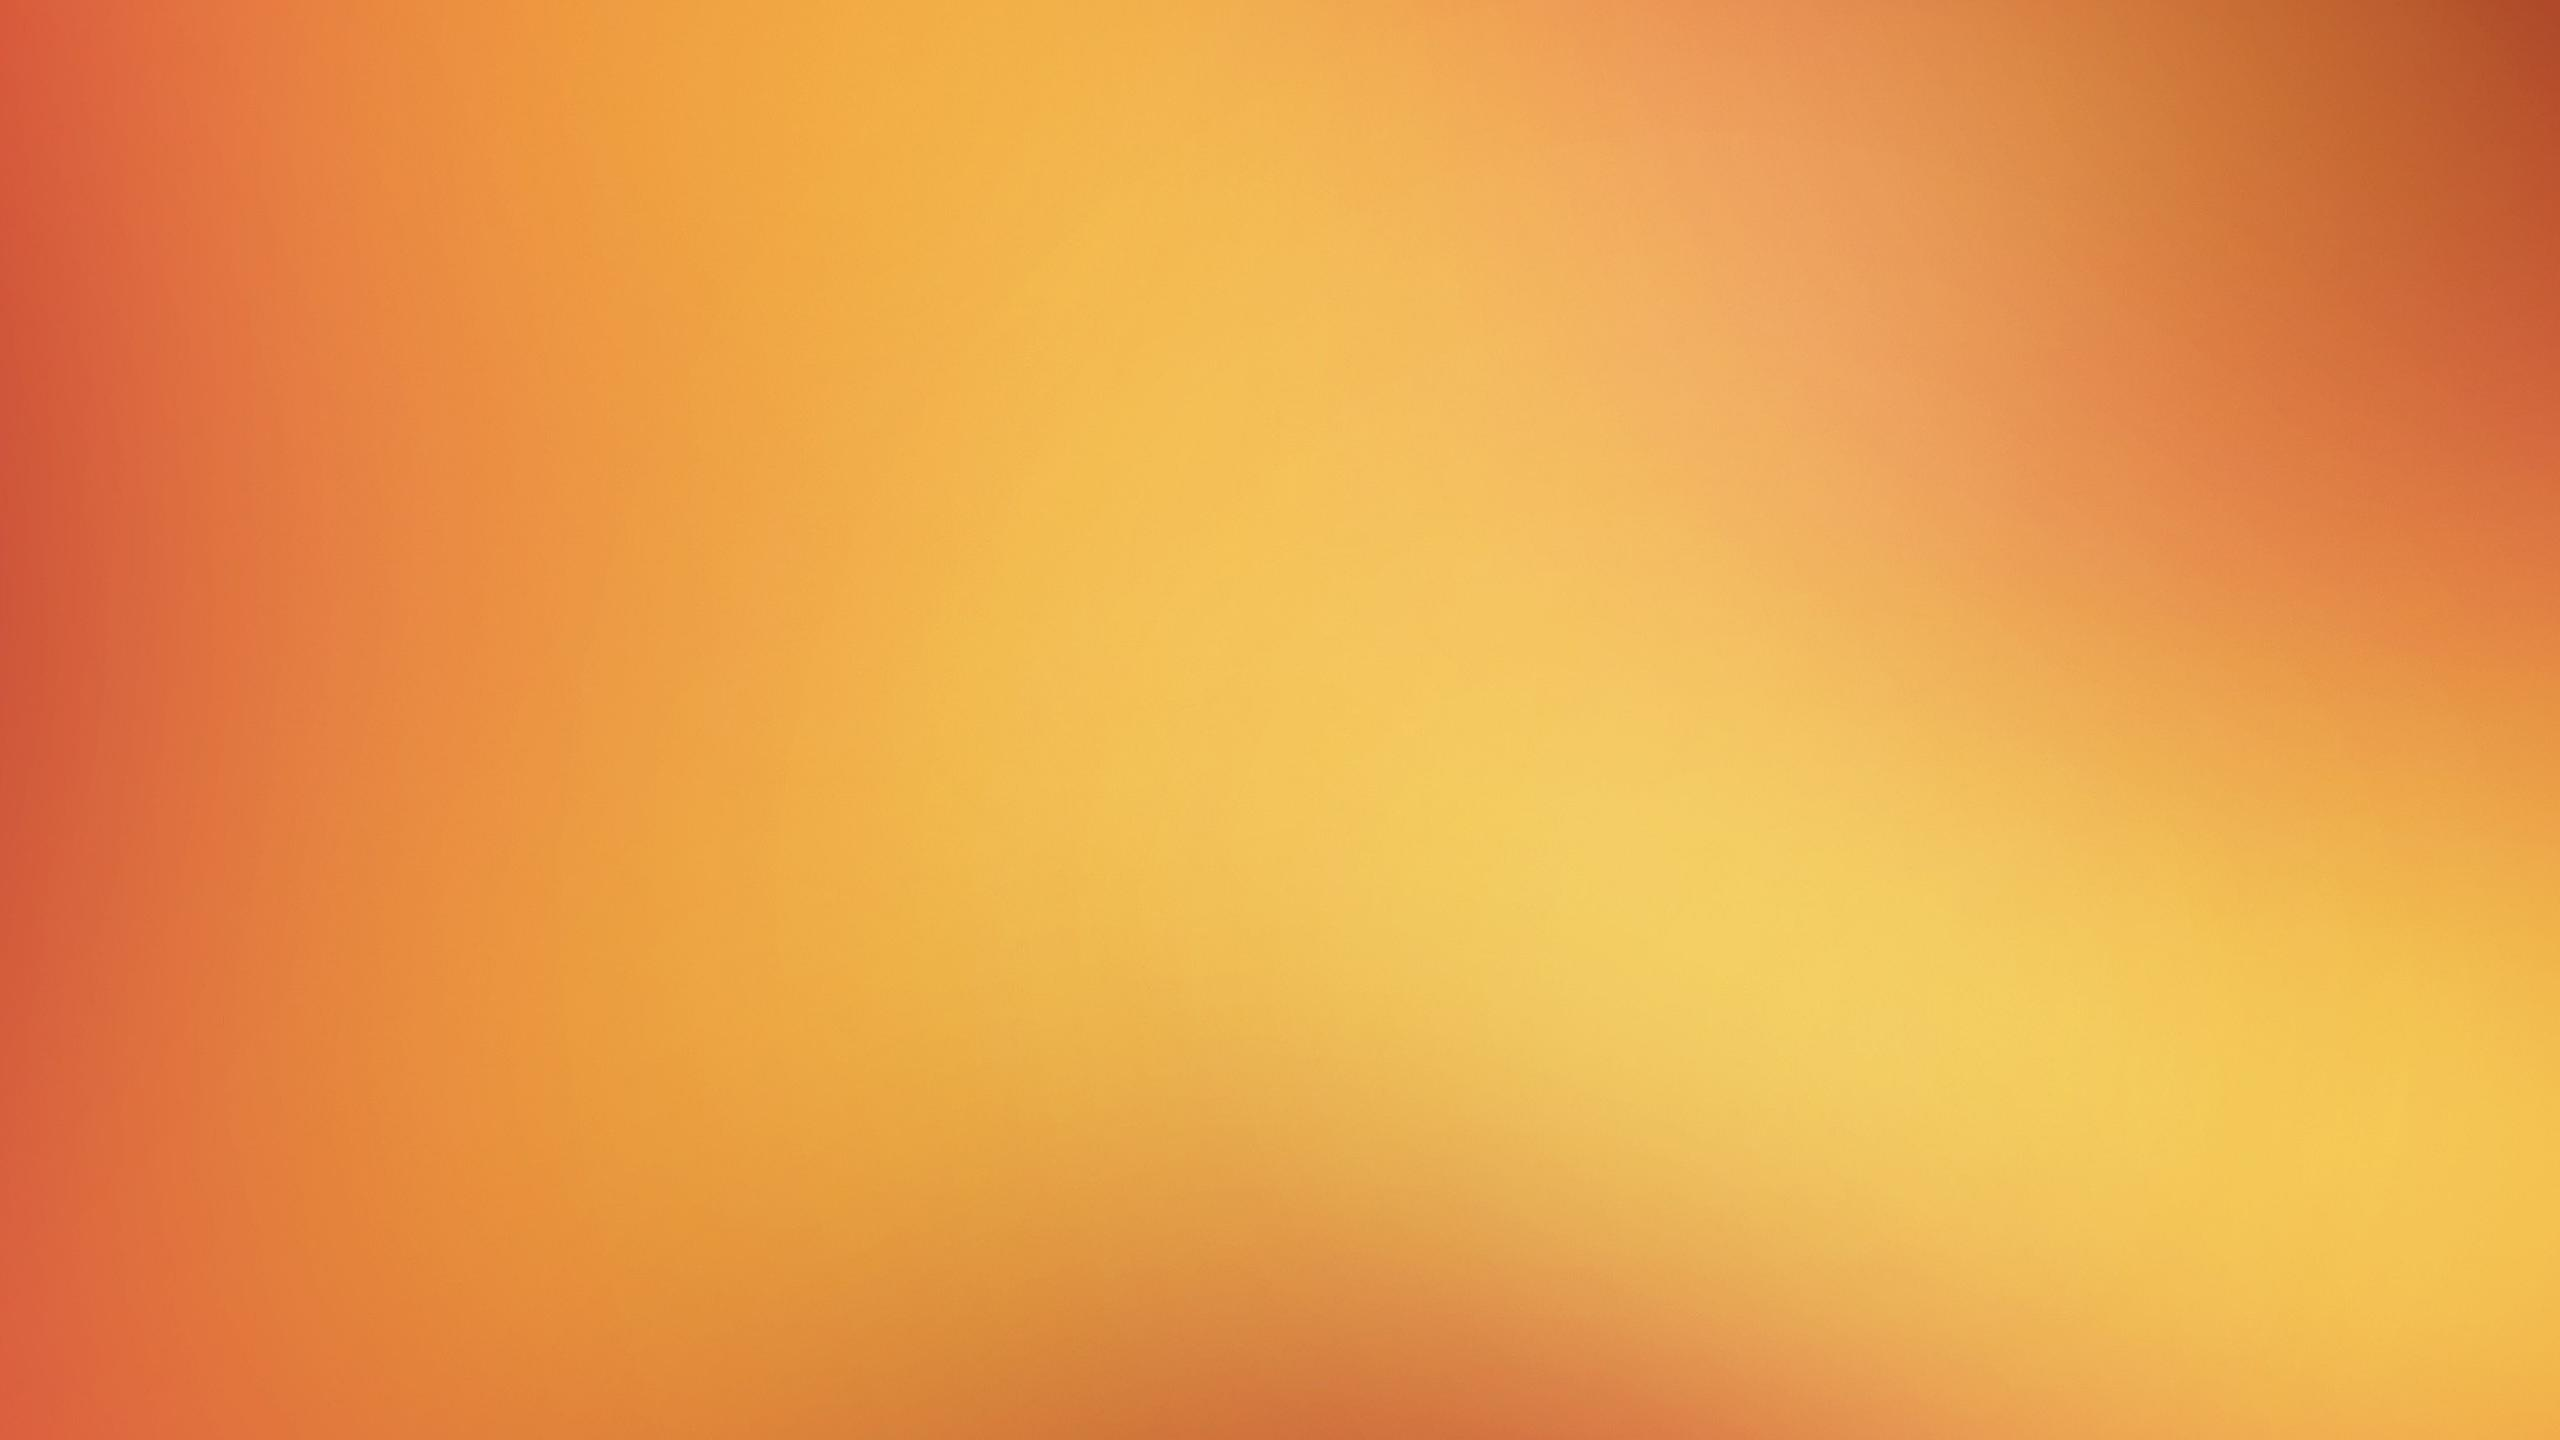 Free Orange Light Wallpaper